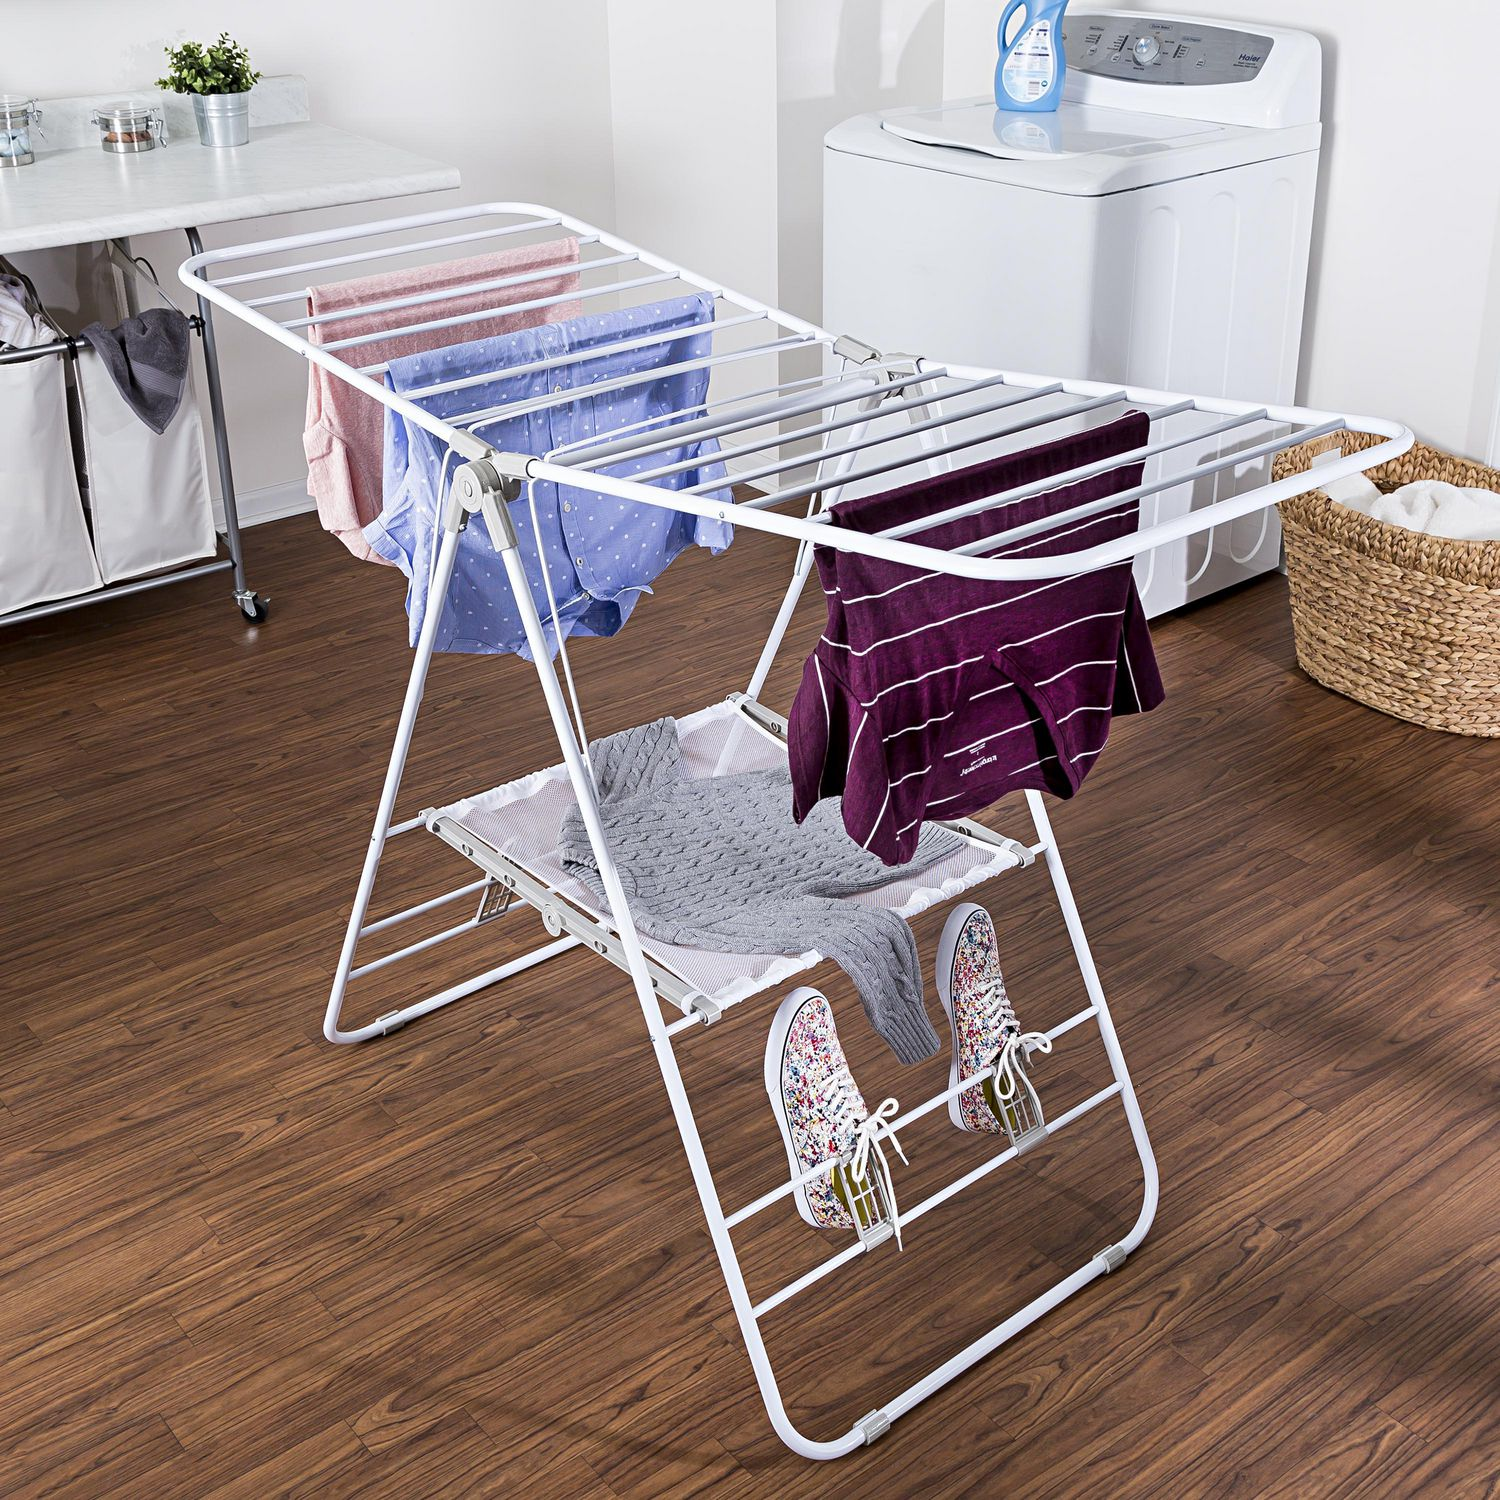 stainless time pure steel indian made use life product cloth rack stand drying